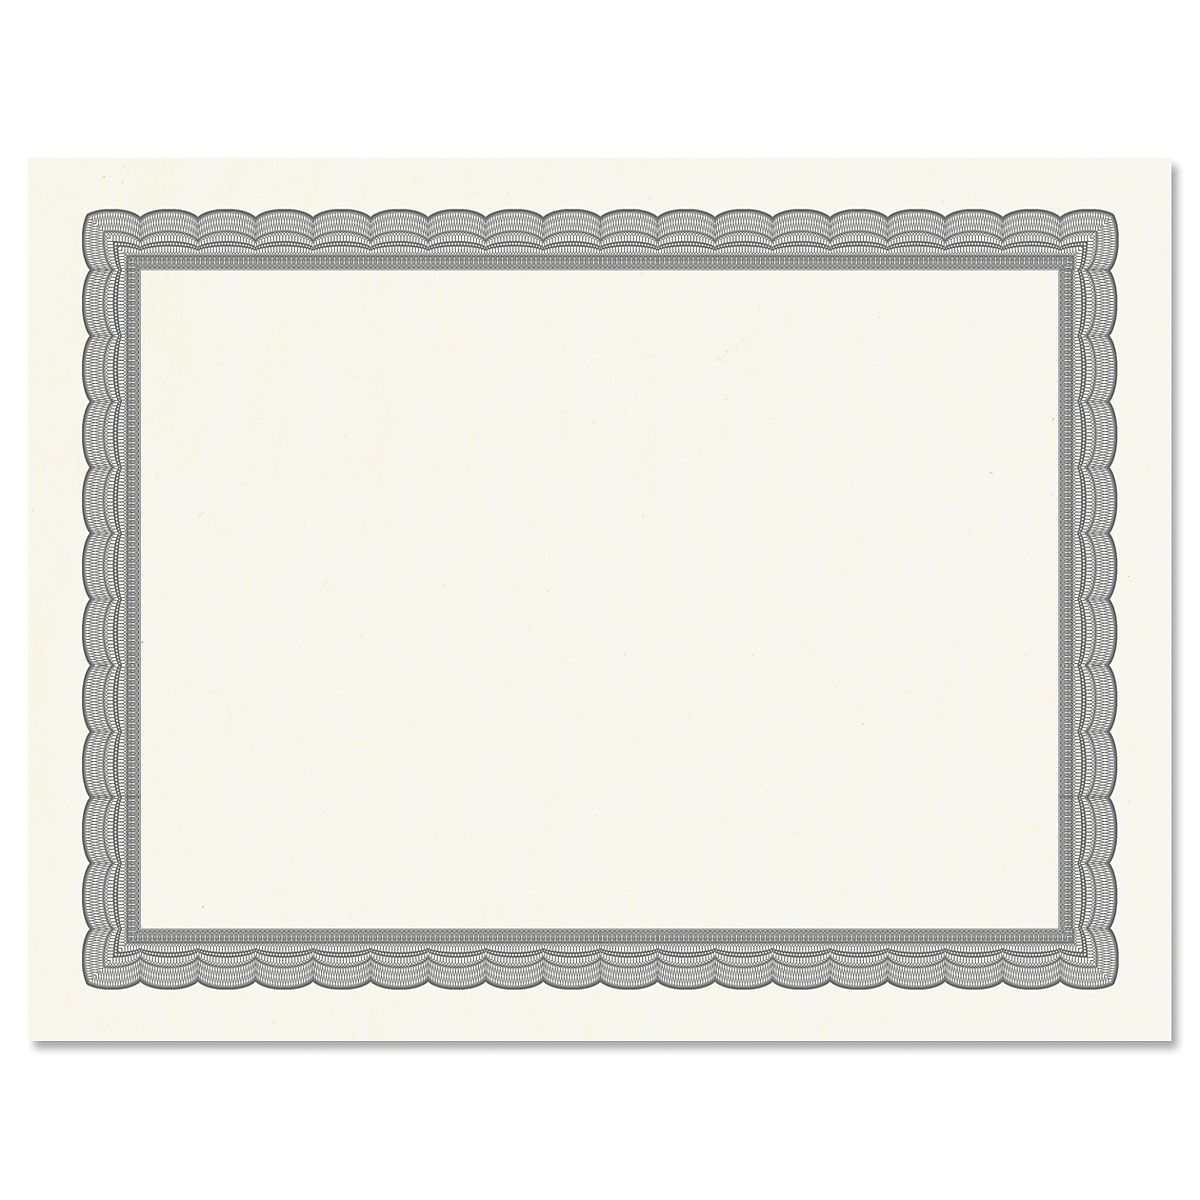 Executive Gray Certificate on White Parchment